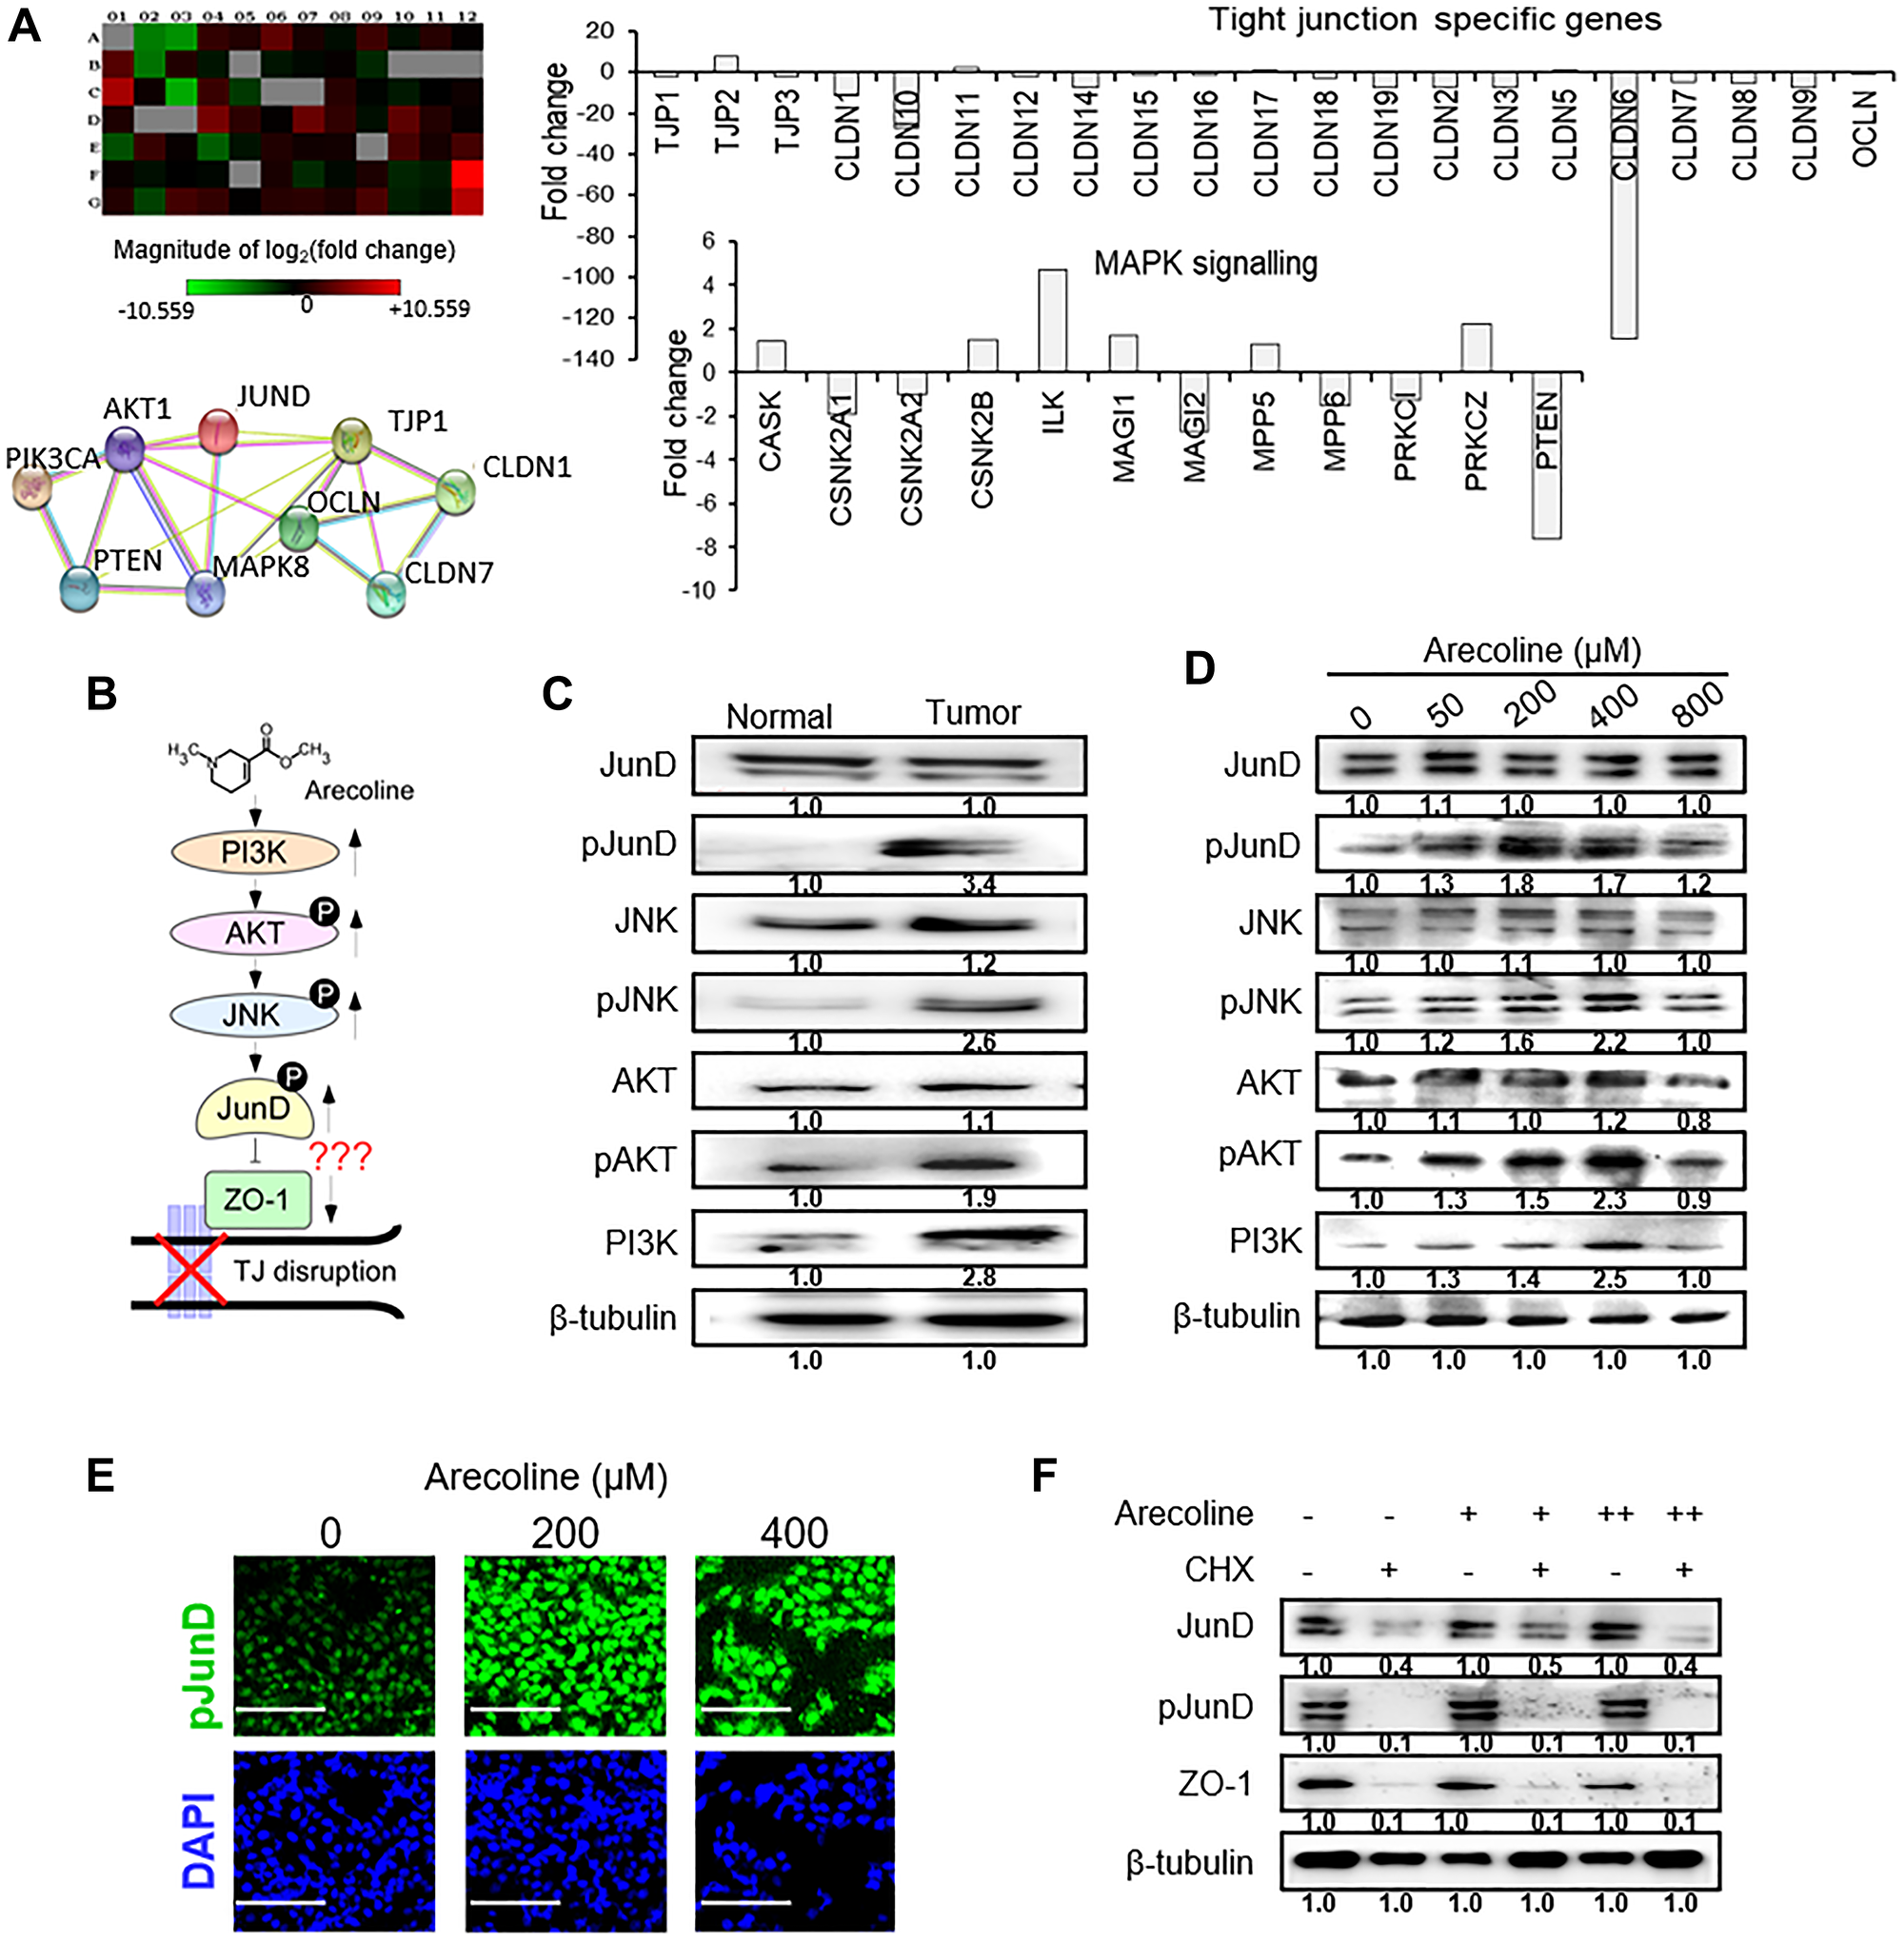 Arecoline-induced activation of the MAPK pathway mediators.